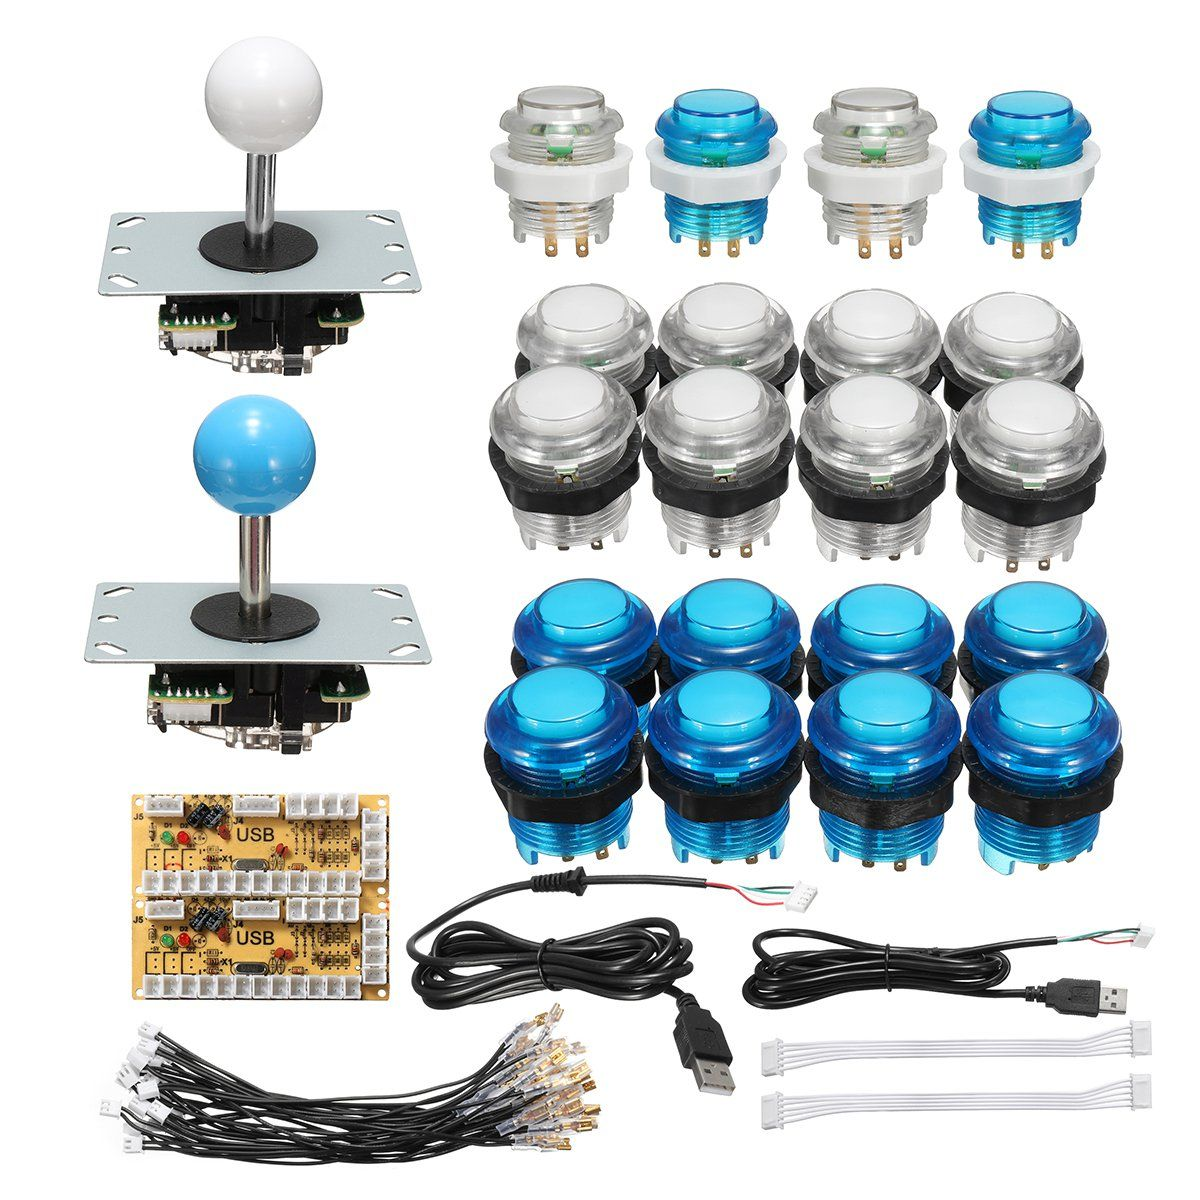 Arcade Joystick DIY Kit Parts With LED Push Button + Joystick + Zero Delay USB Encoder + Cables Game Joystick Arcade DIY Kits